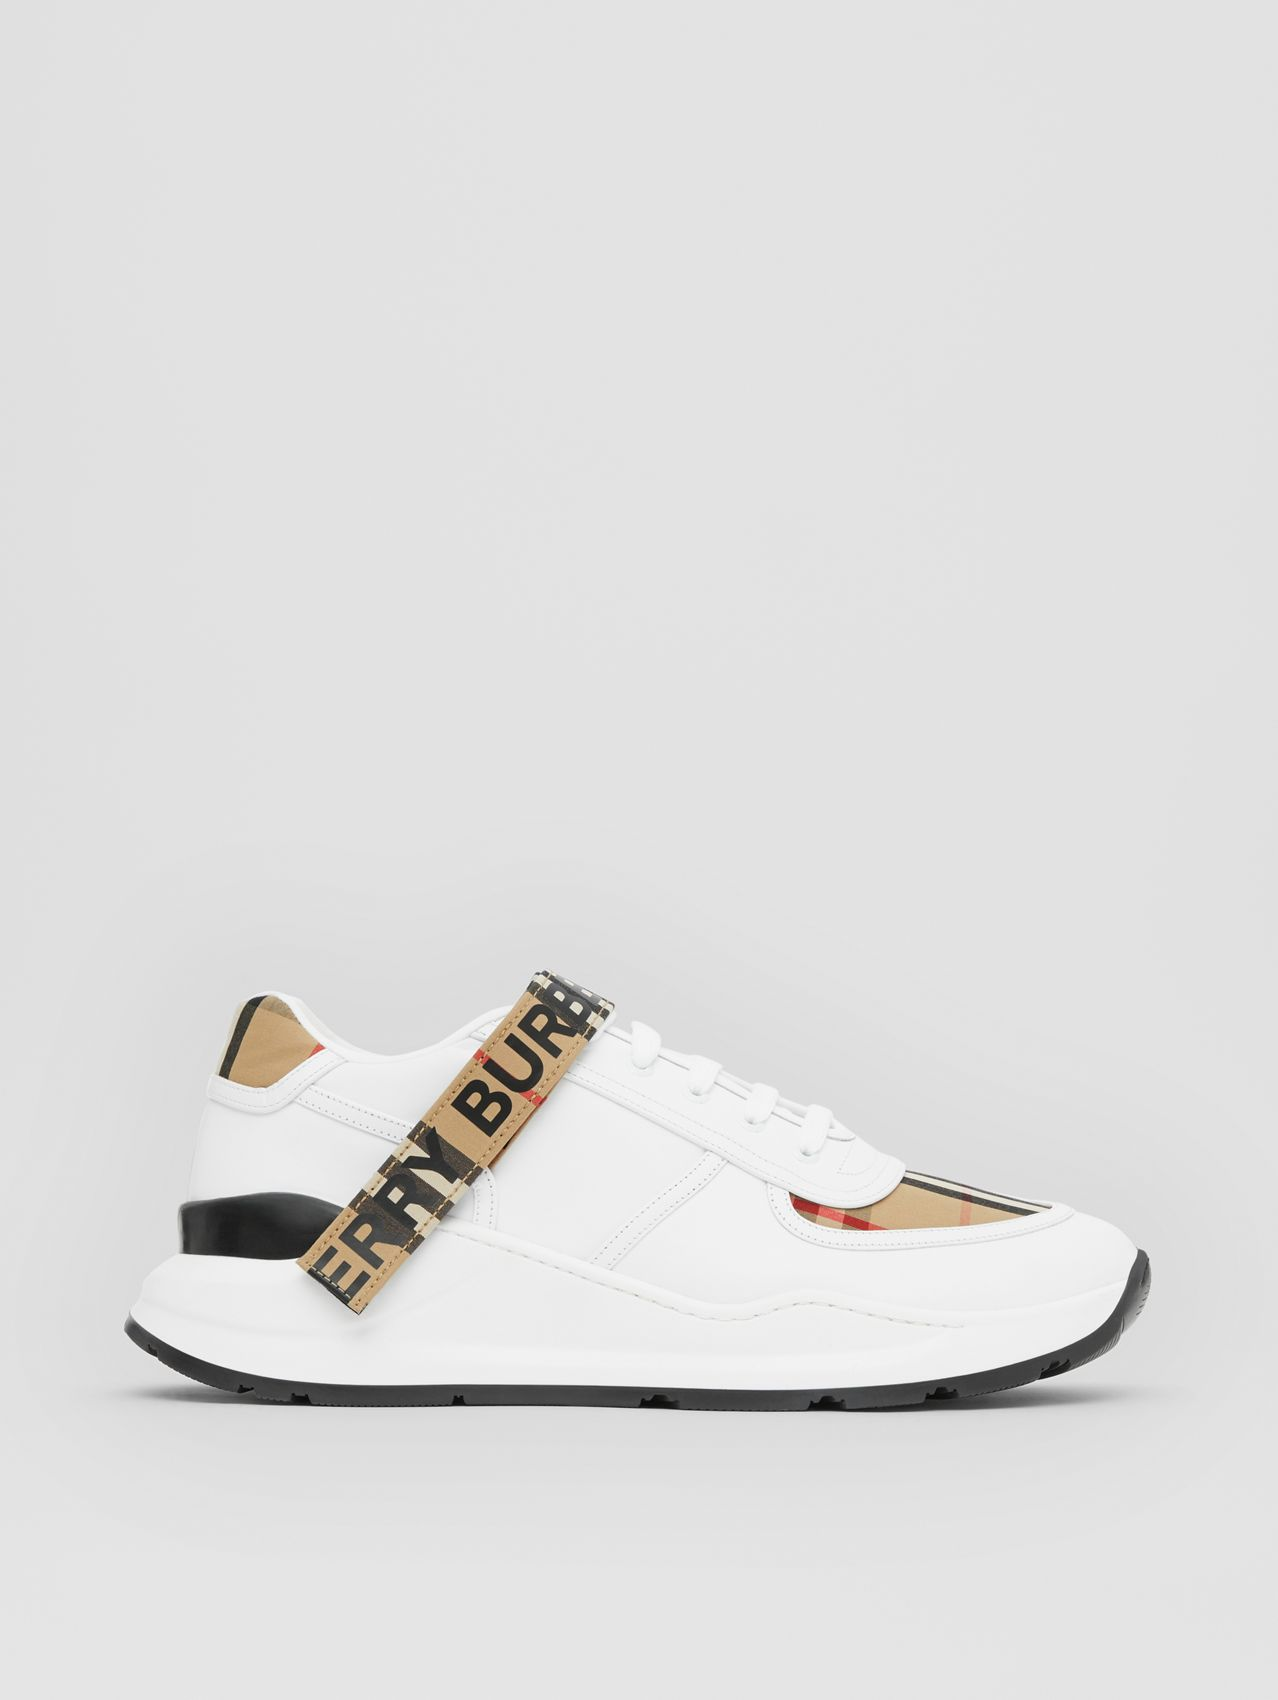 Logo Detail Leather and Vintage Check Sneakers in Archive Beige/white